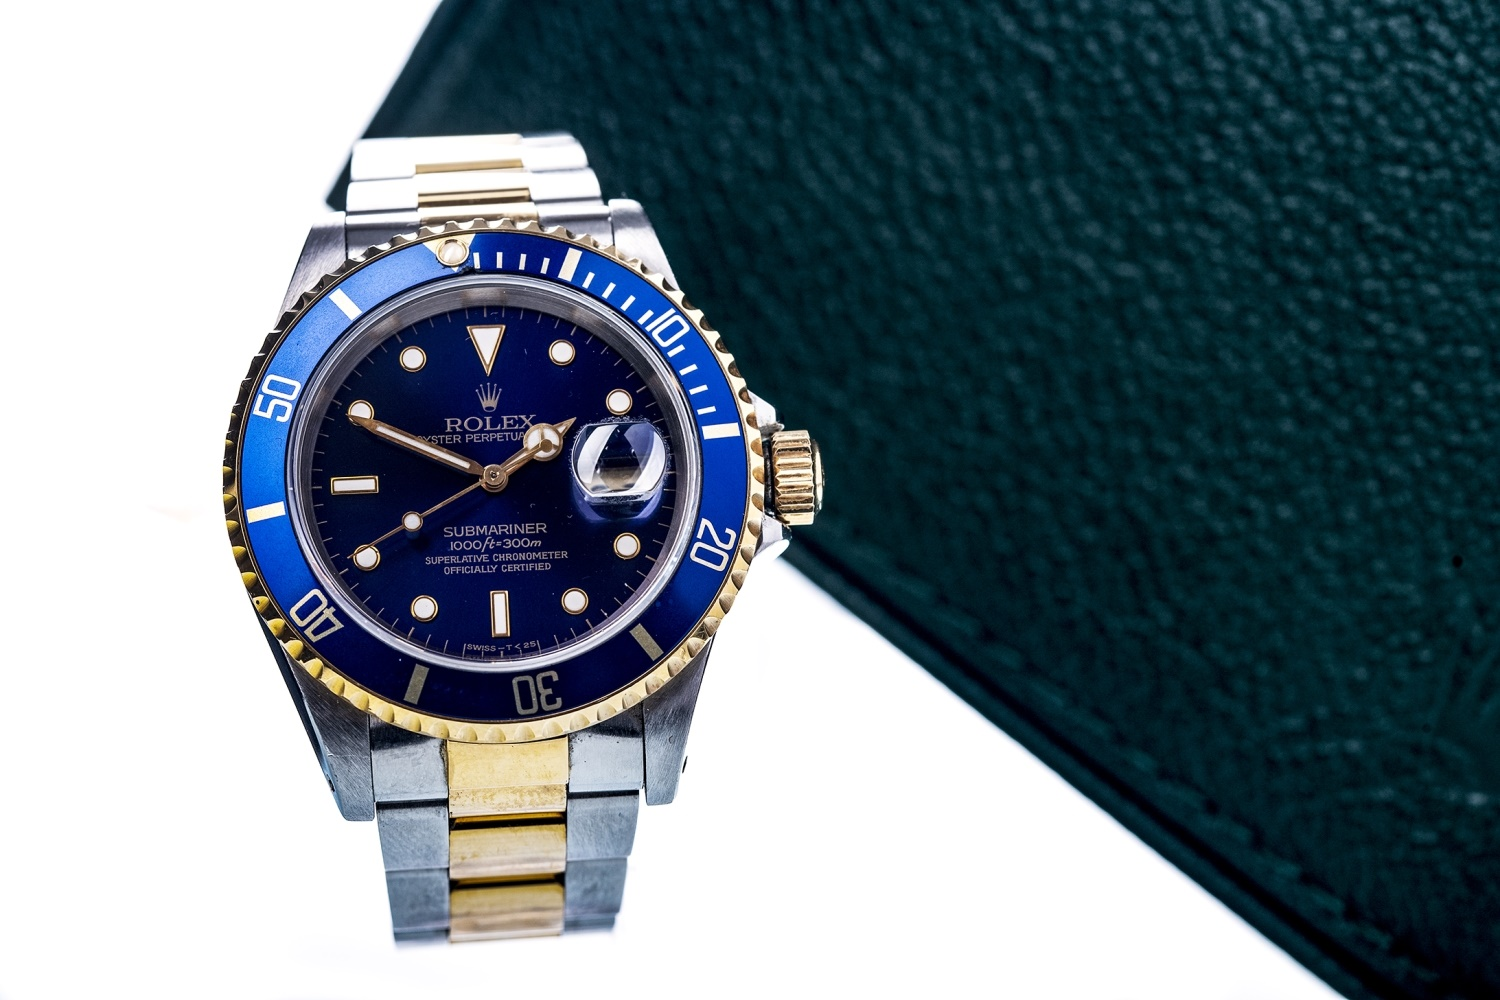 Lot 863 - A GENTLEMAN'S ROLEX OYSTER PERPETUAL DATE SUBMARINER STAINLESS STEEL BI COLOUR AUTOMATIC WRIST WATCH